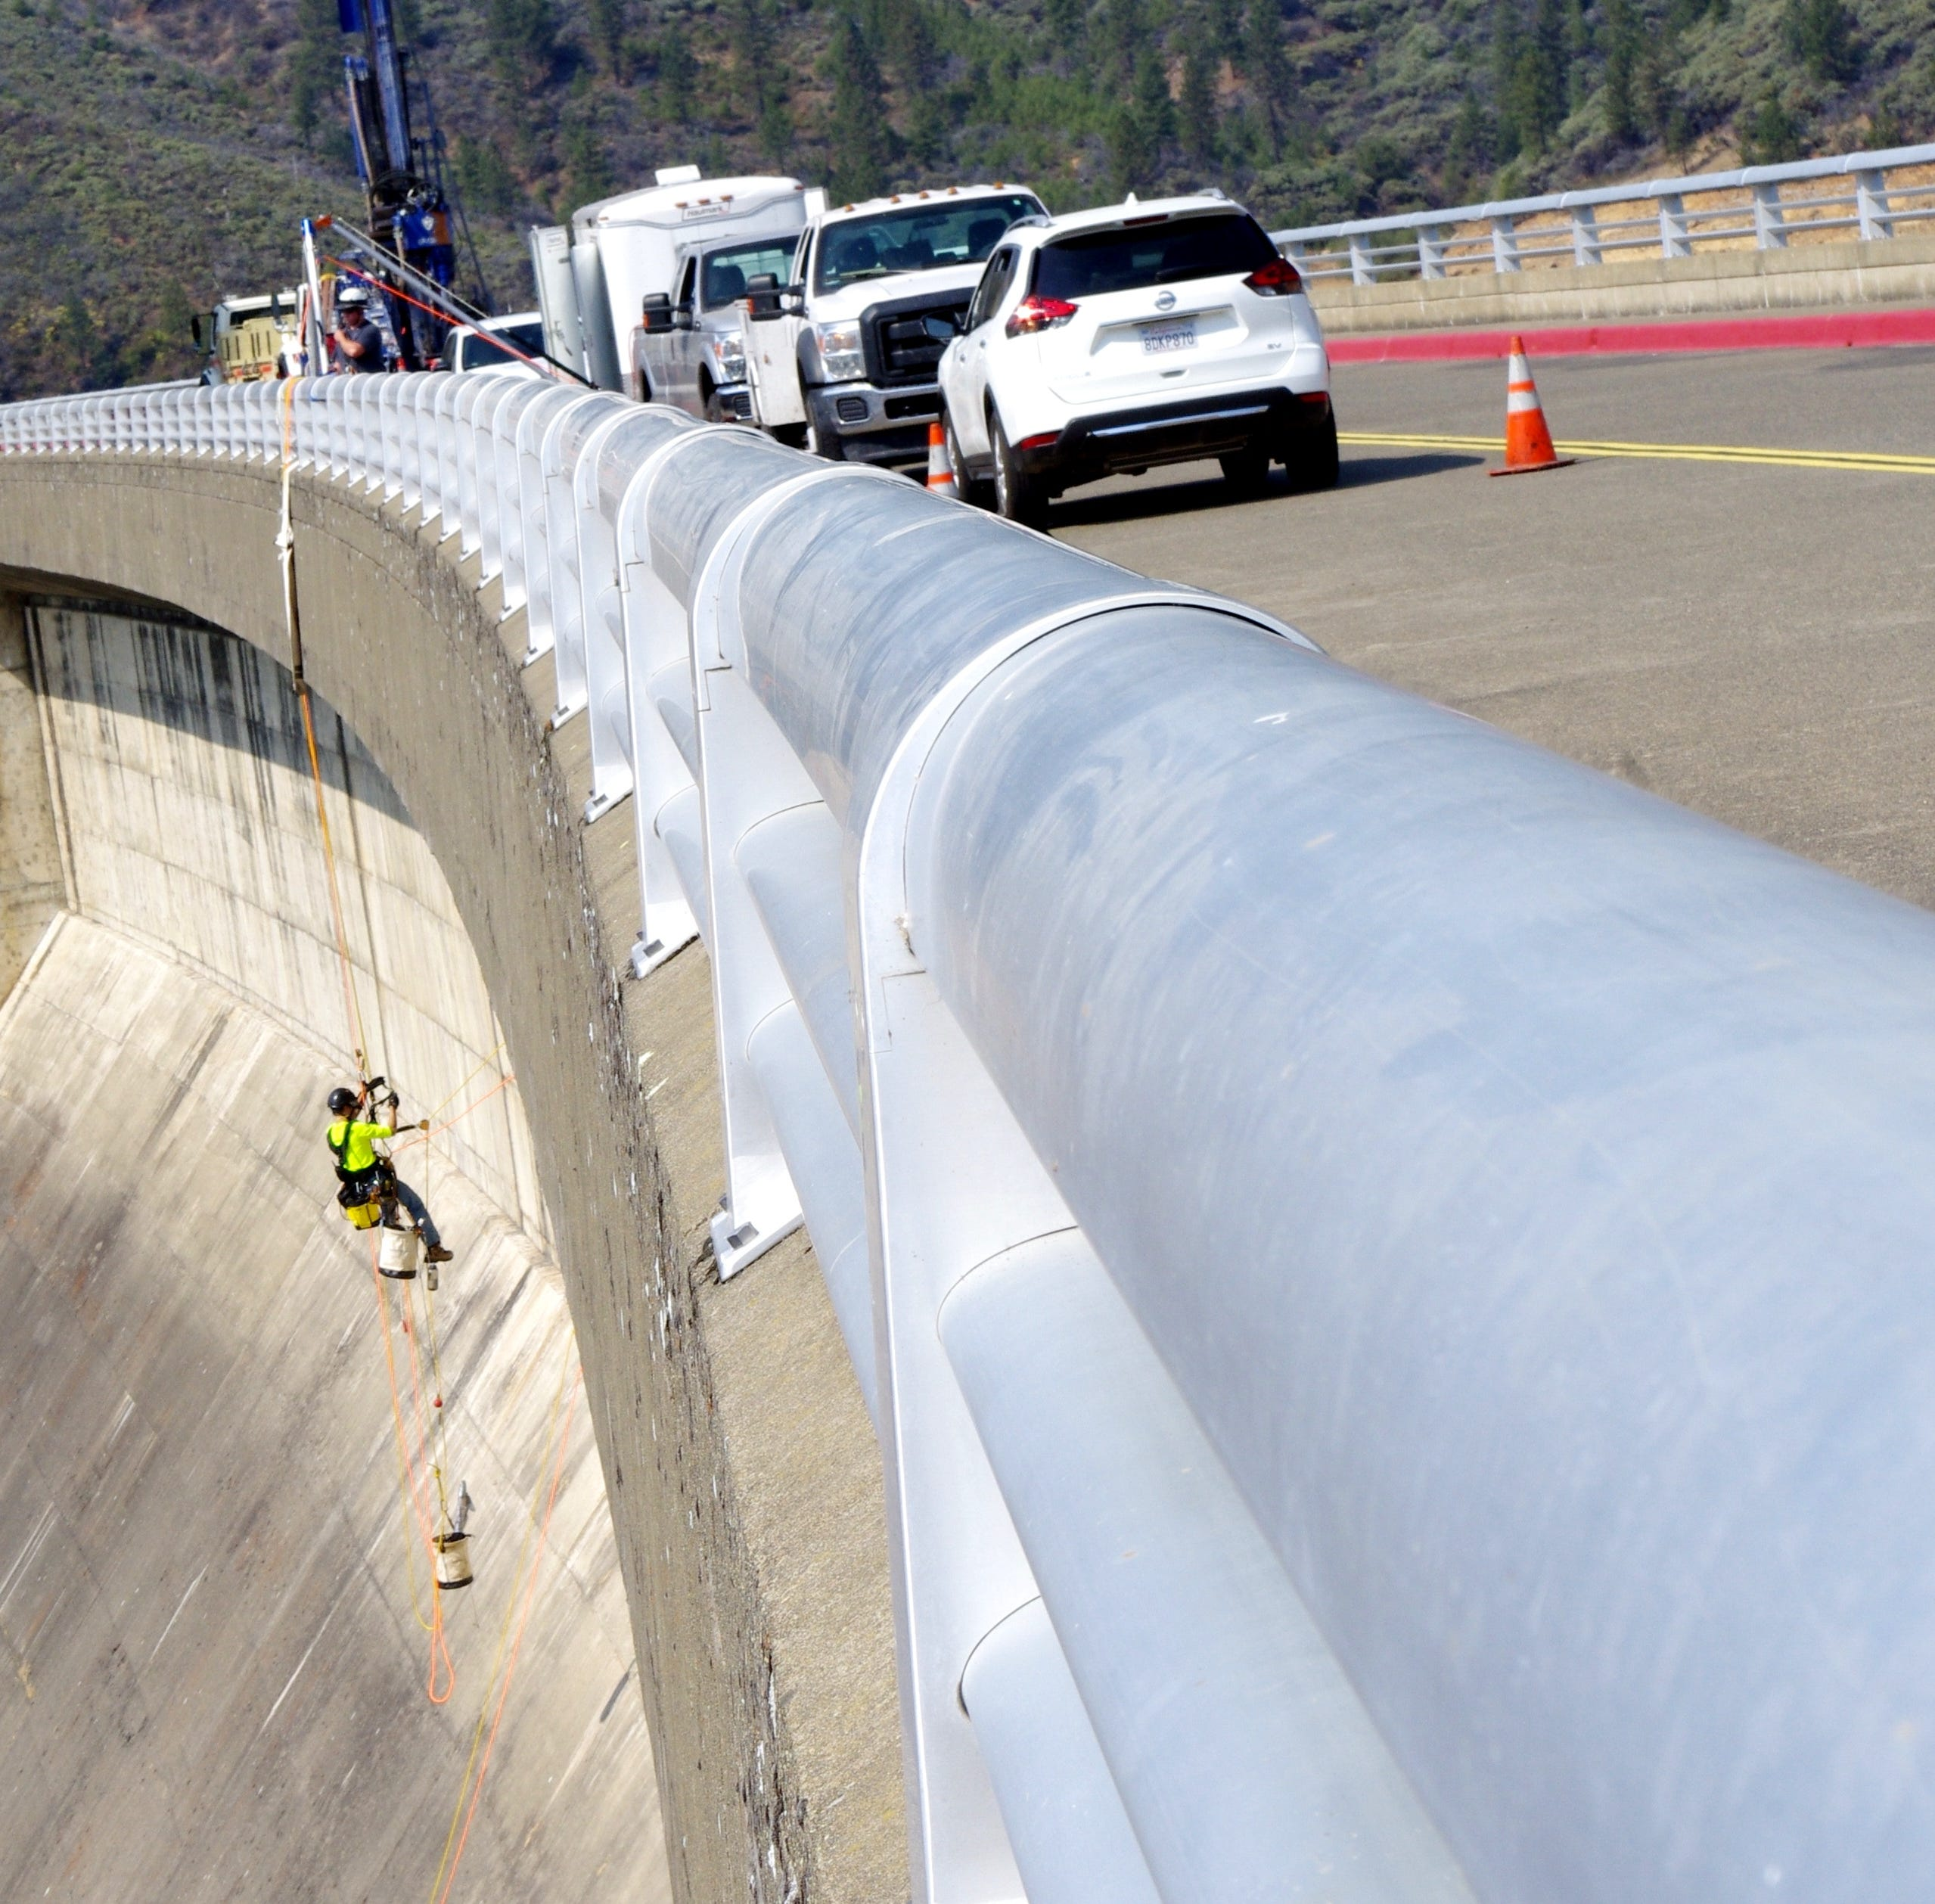 Westlands Water District says it's studying whether to support Shasta Dam raise